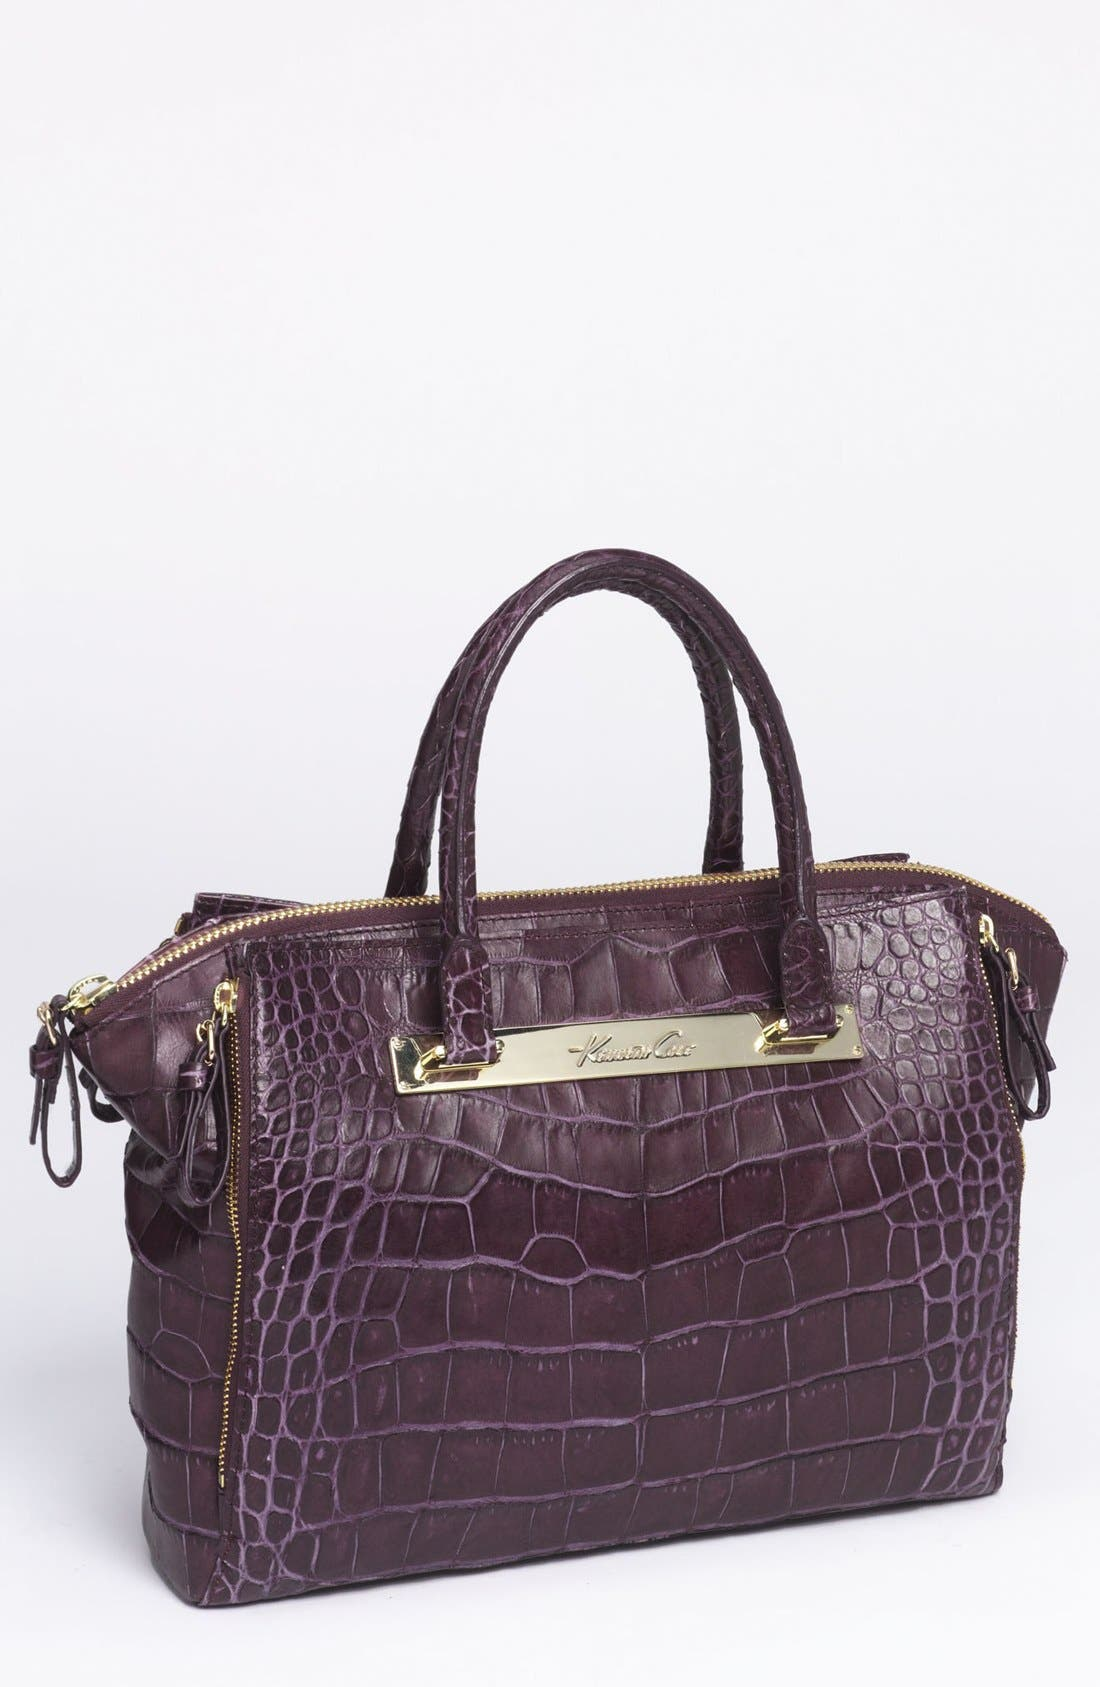 Alternate Image 1 Selected - Kenneth Cole New York 'Raise The Bar' Satchel, Medium